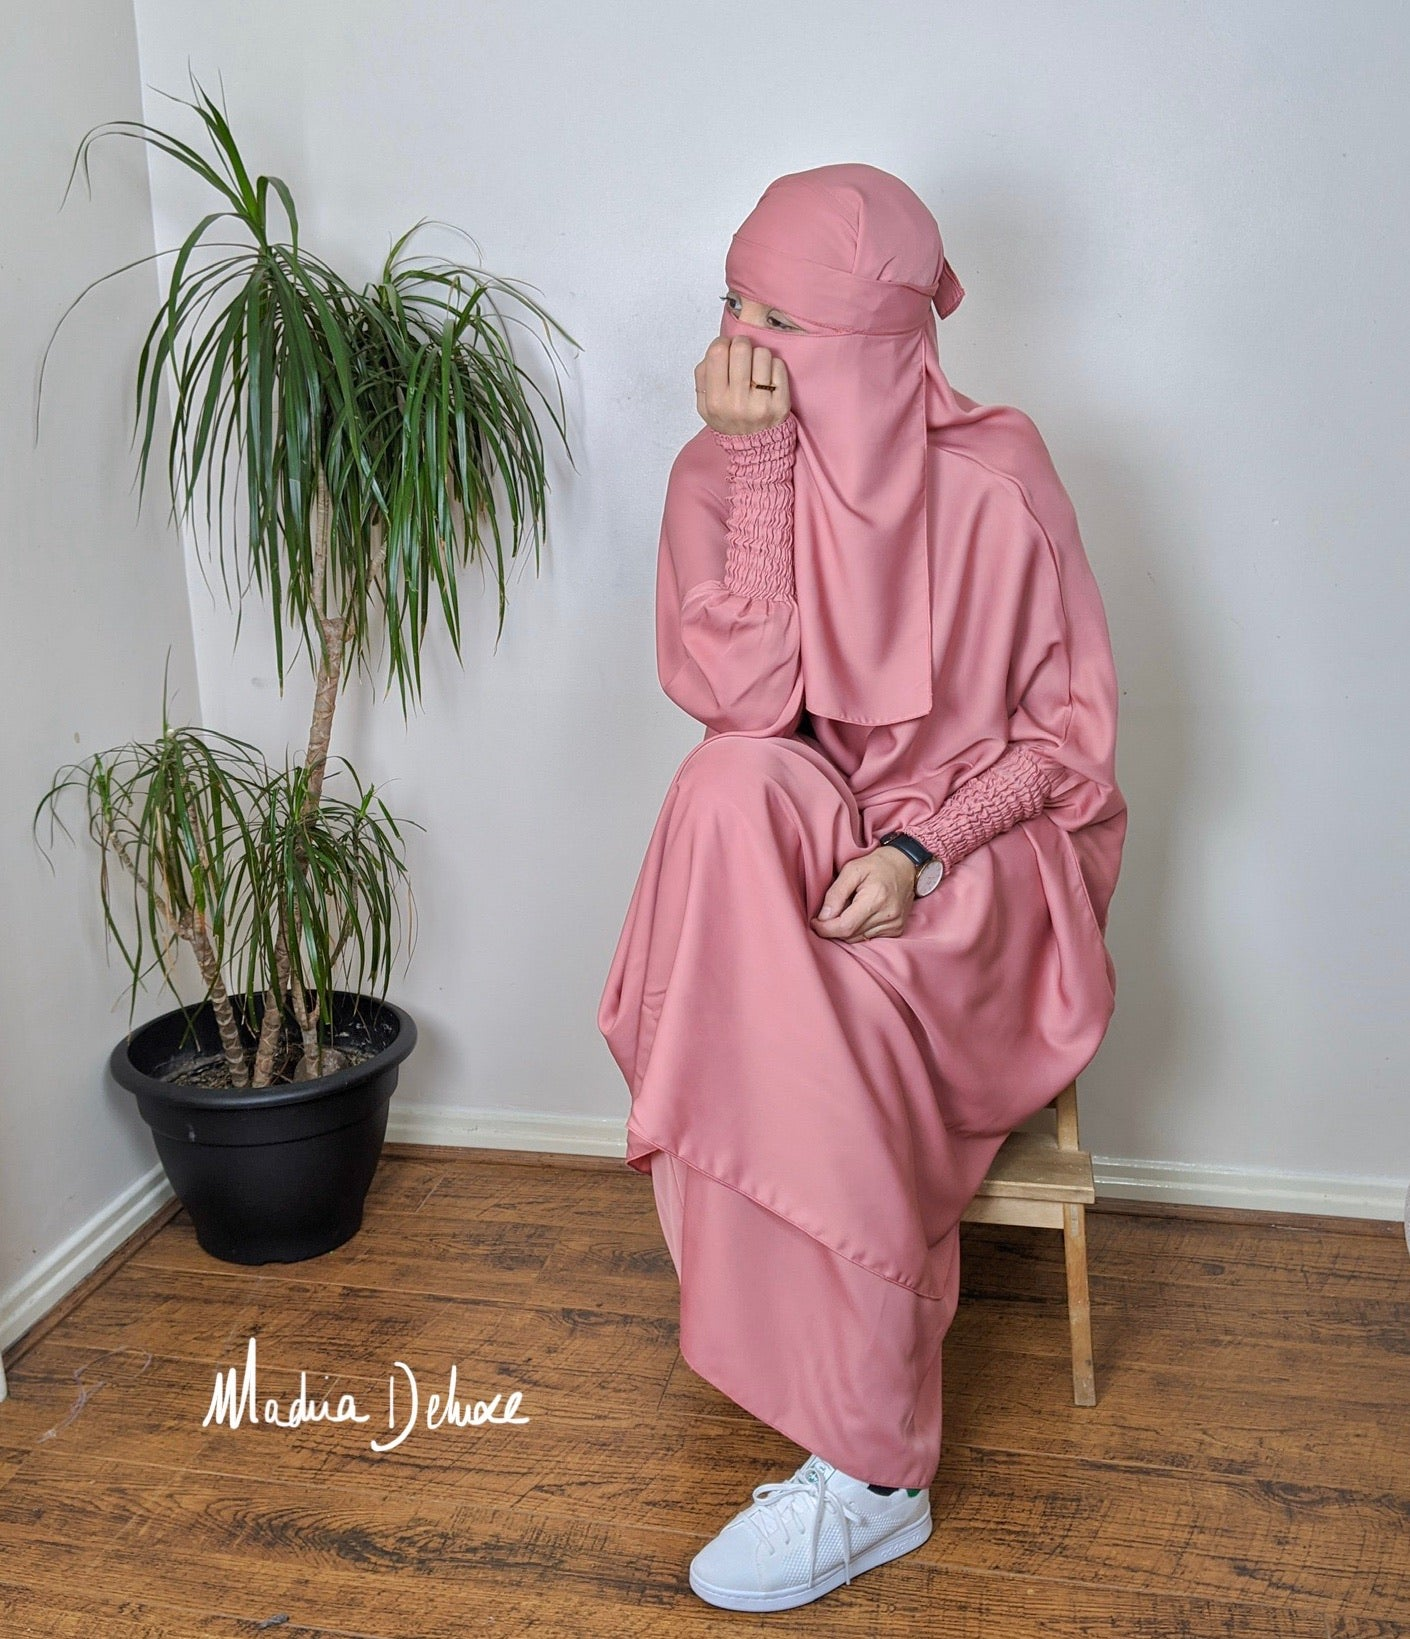 NEW ! JILBAB MAKKAH DELUXE (+niqab) Pink Candy floss